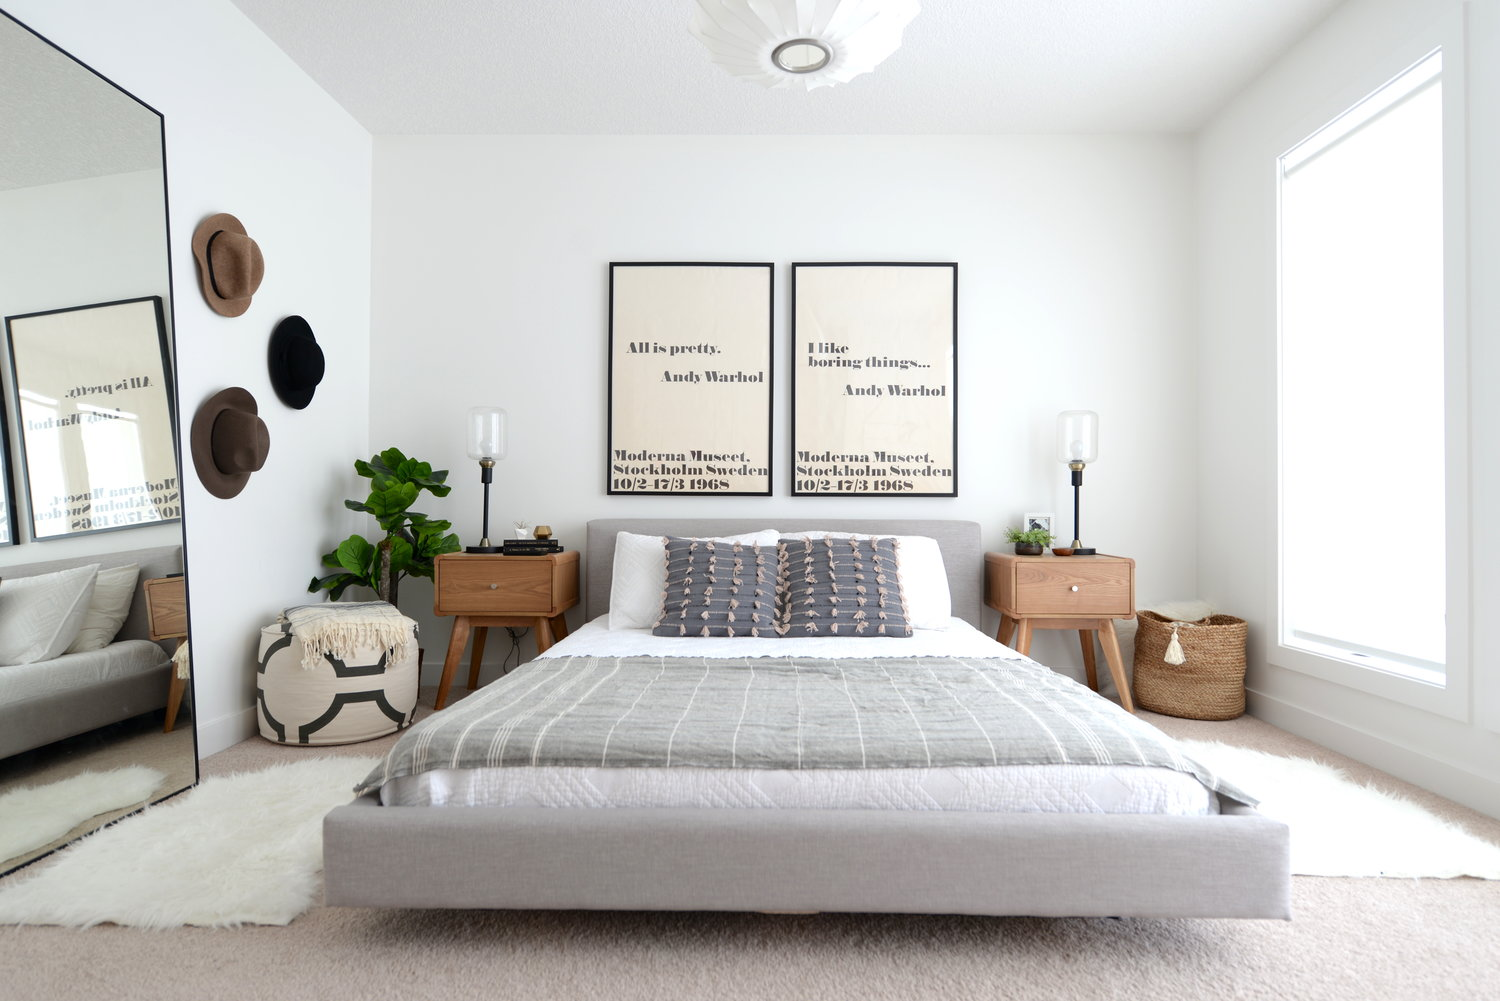 modern+bedroom+design.jpg